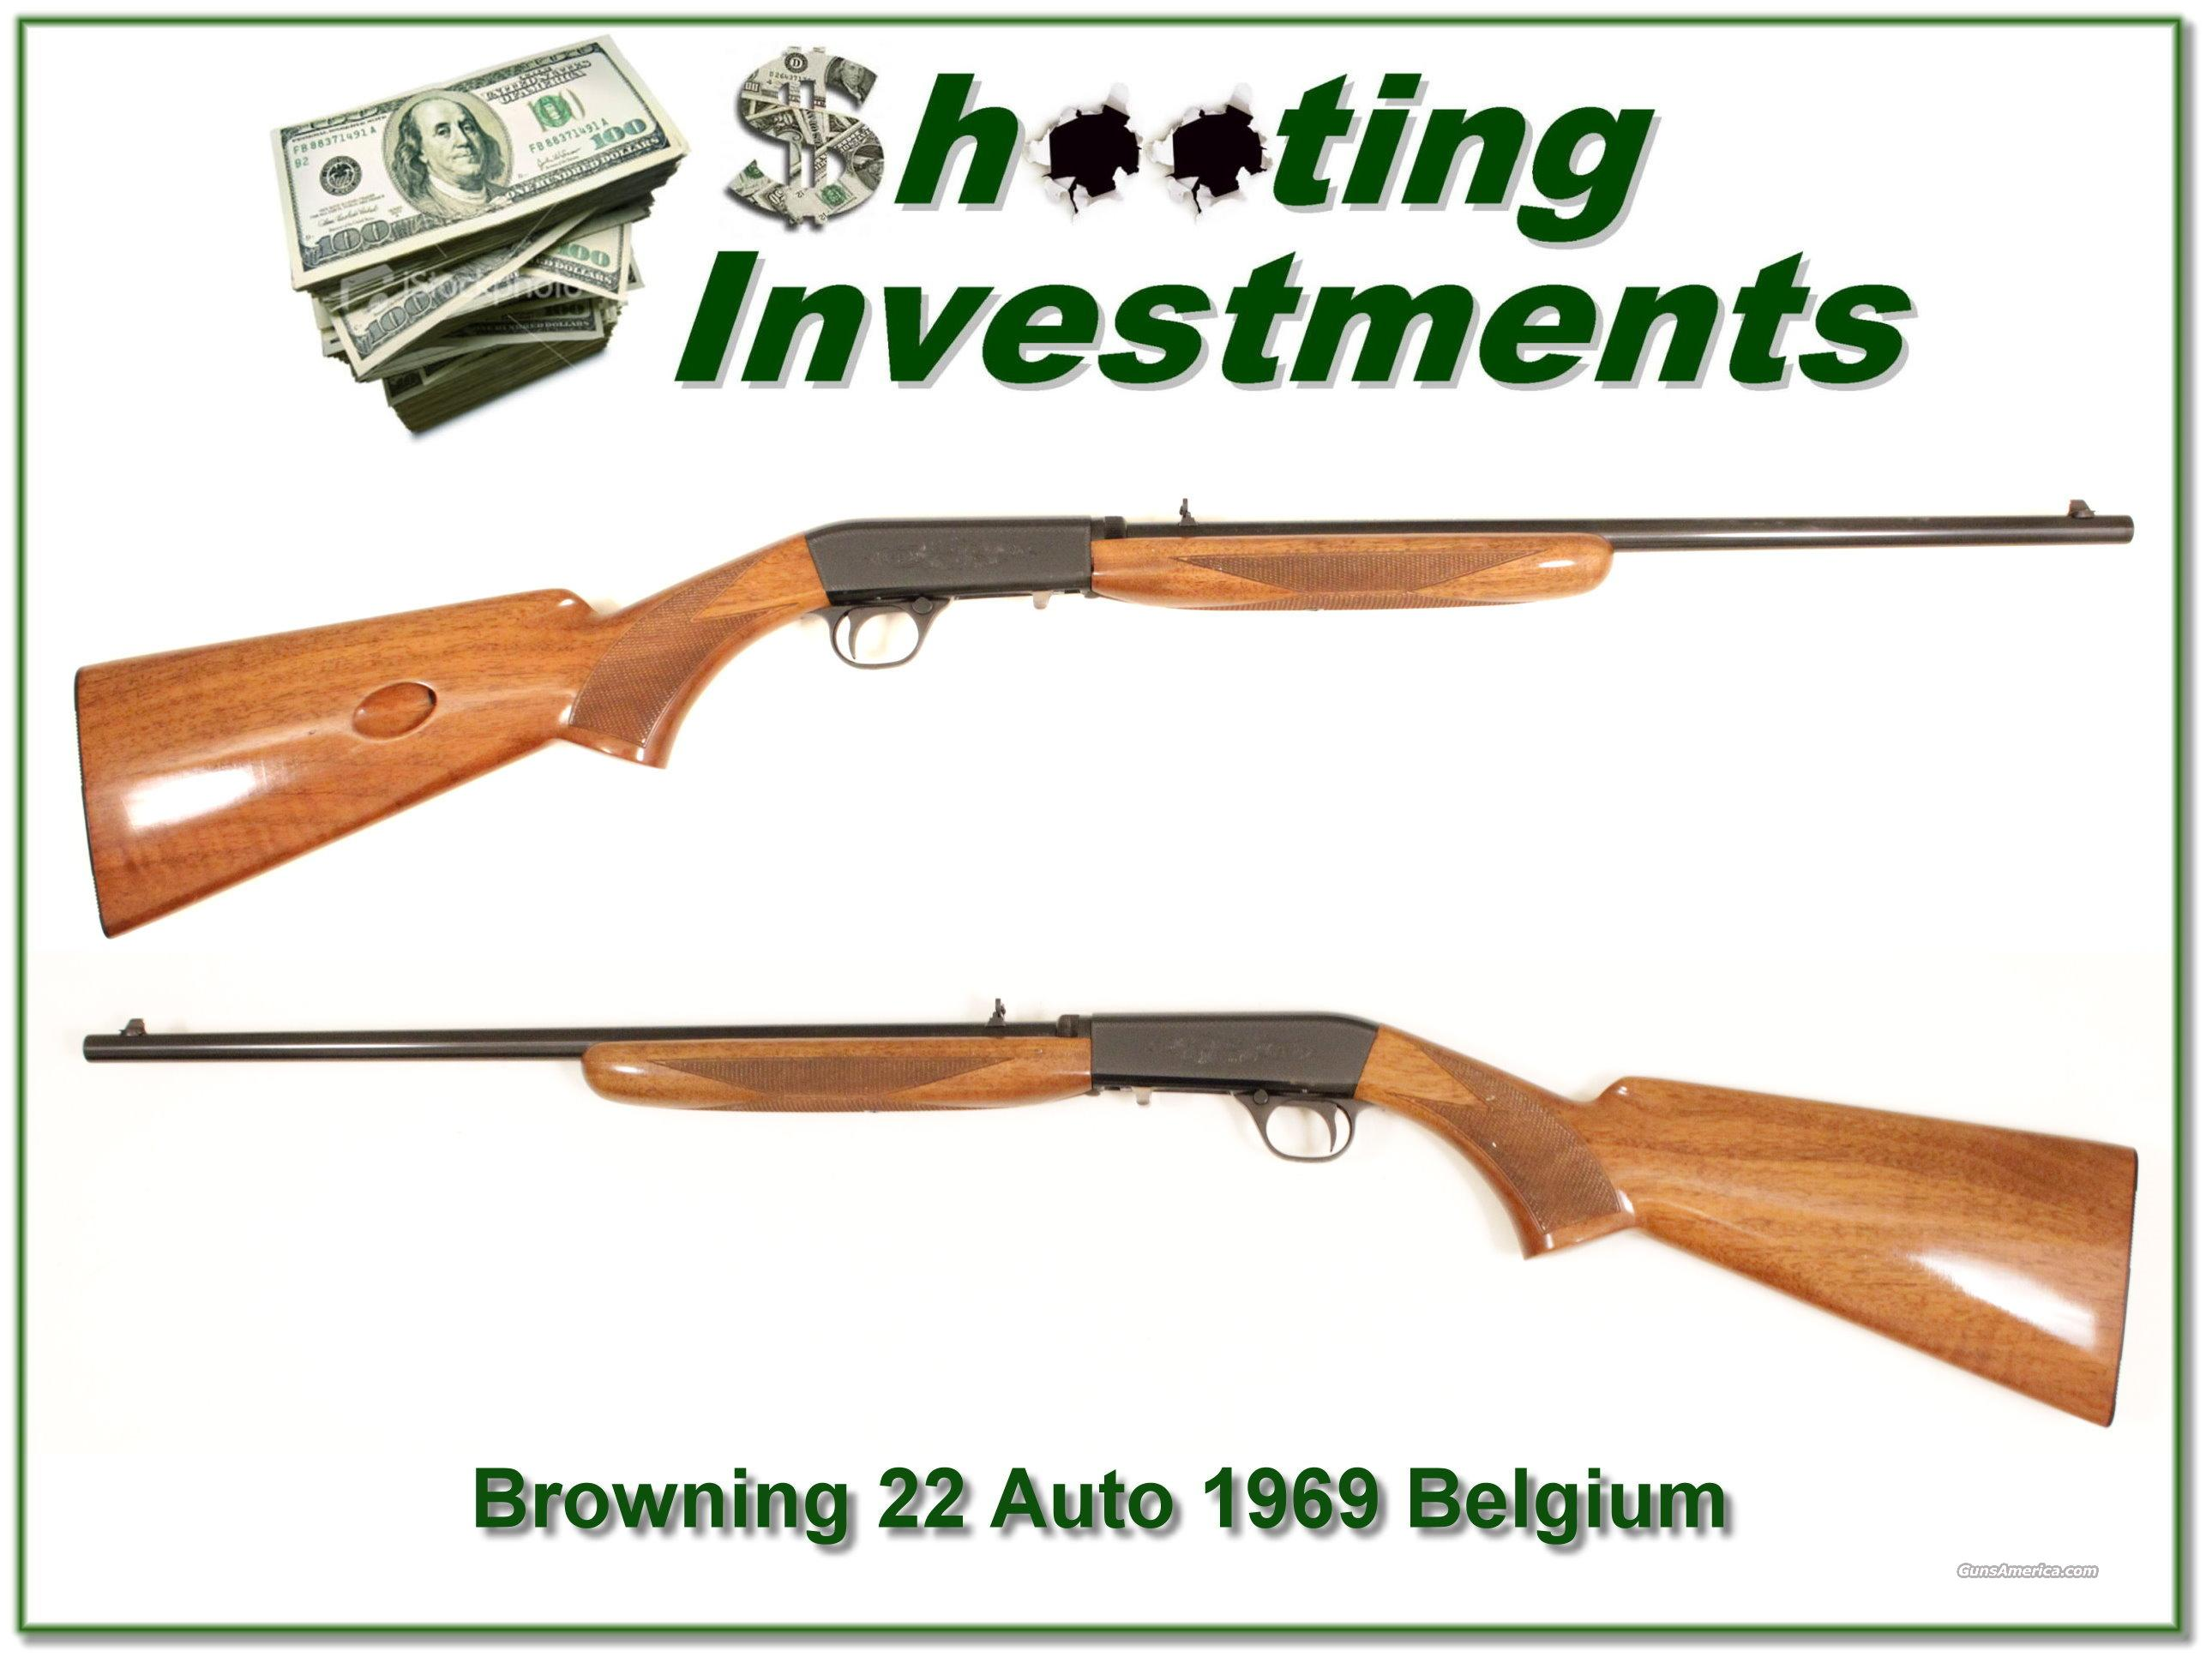 Browning ATD 22 auto '69 Belgium  Guns > Rifles > Browning Rifles > Semi Auto > Hunting